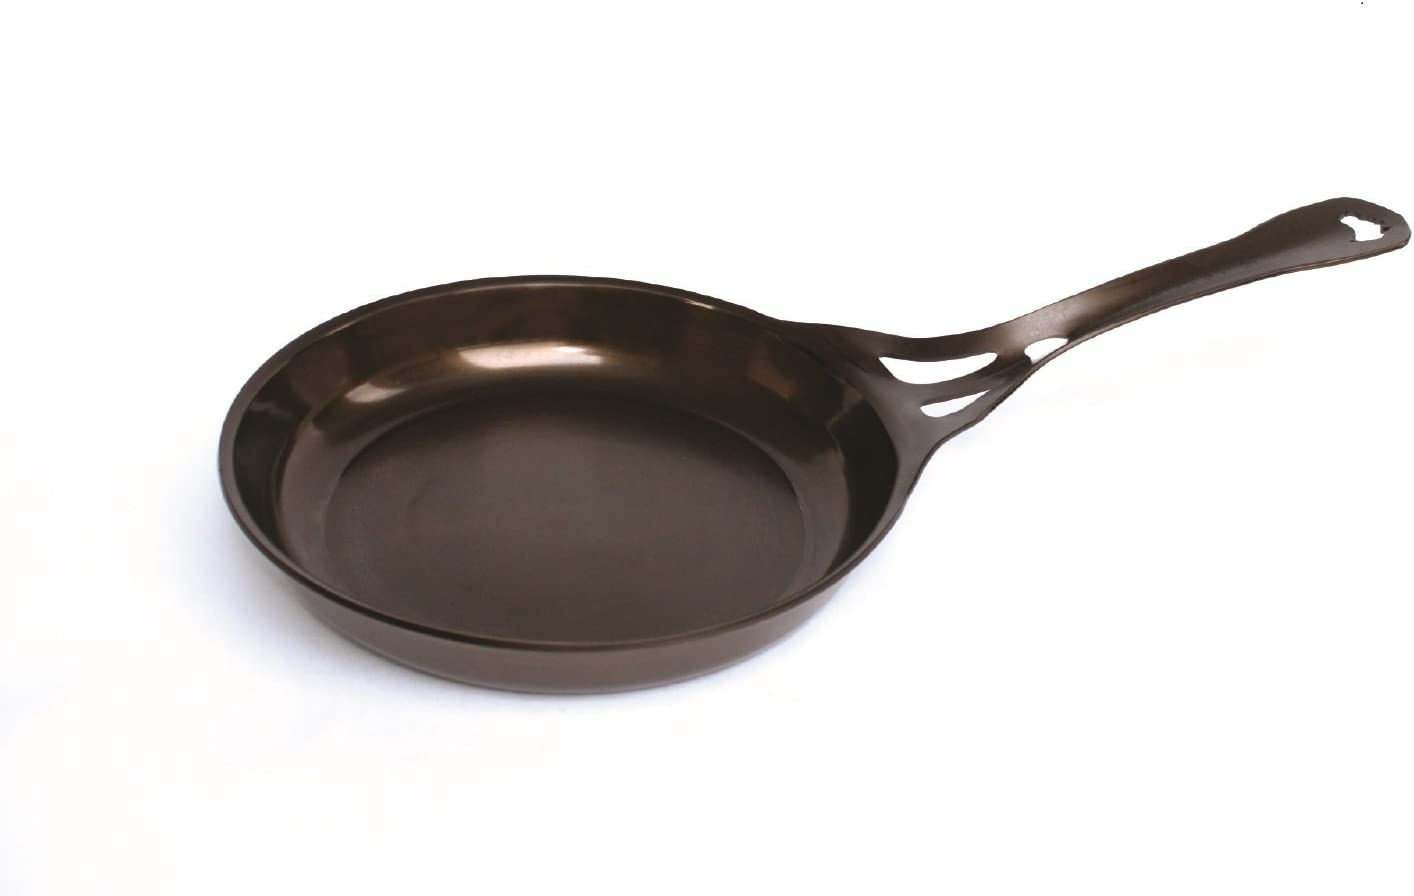 "AUS-ION Skillet, 10.2"" (26cm), Smooth Finish, 100% Made in Sydney, 3mm Australian Iron, Professional Grade Cookware"